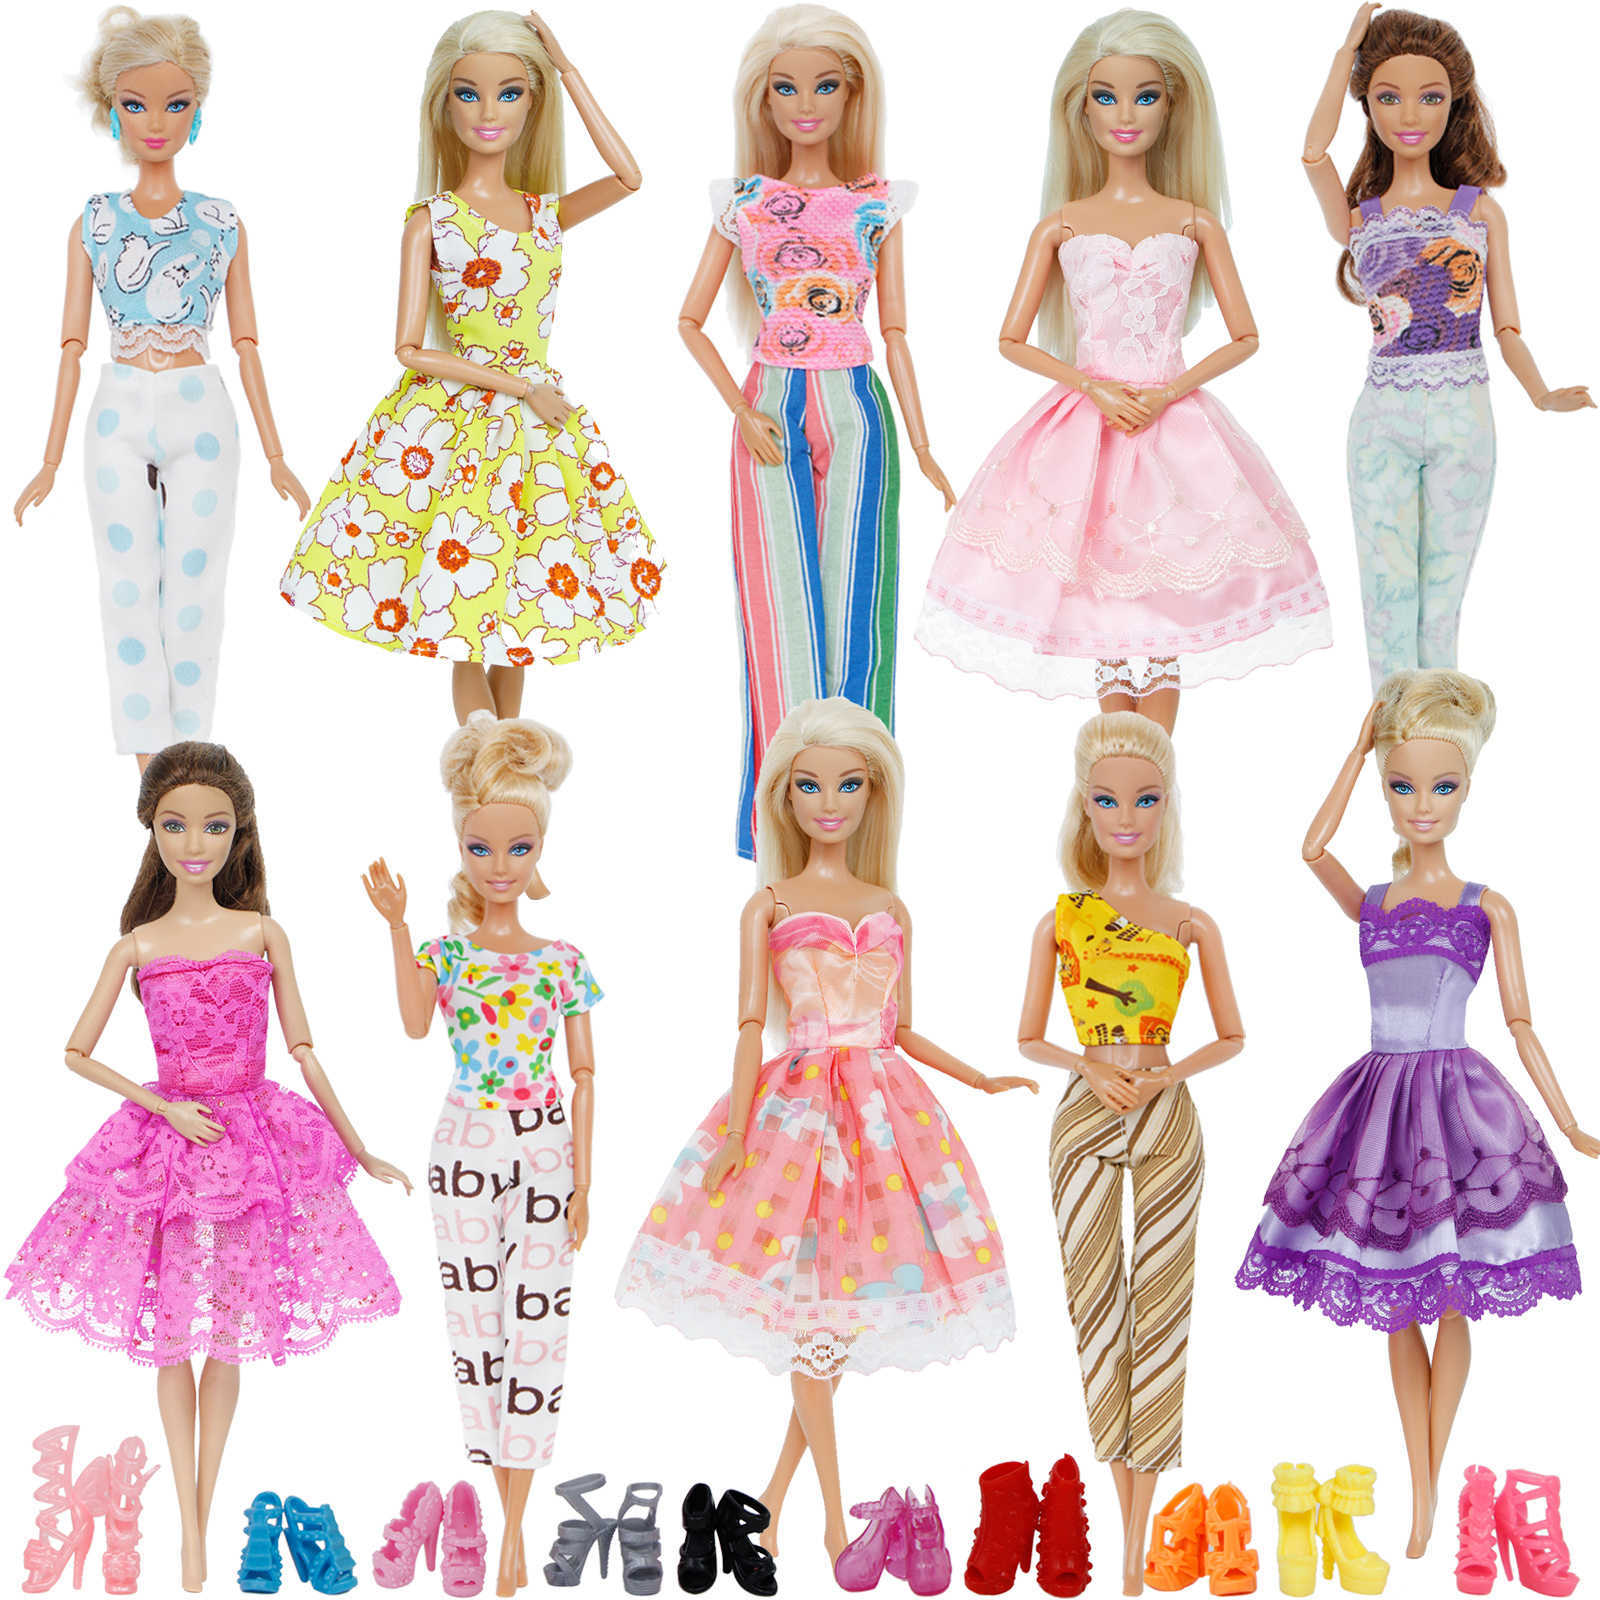 40 Pcs//Lot Handmade Party Clothes Dress outfit for Barbie Doll Chirstmas Gift